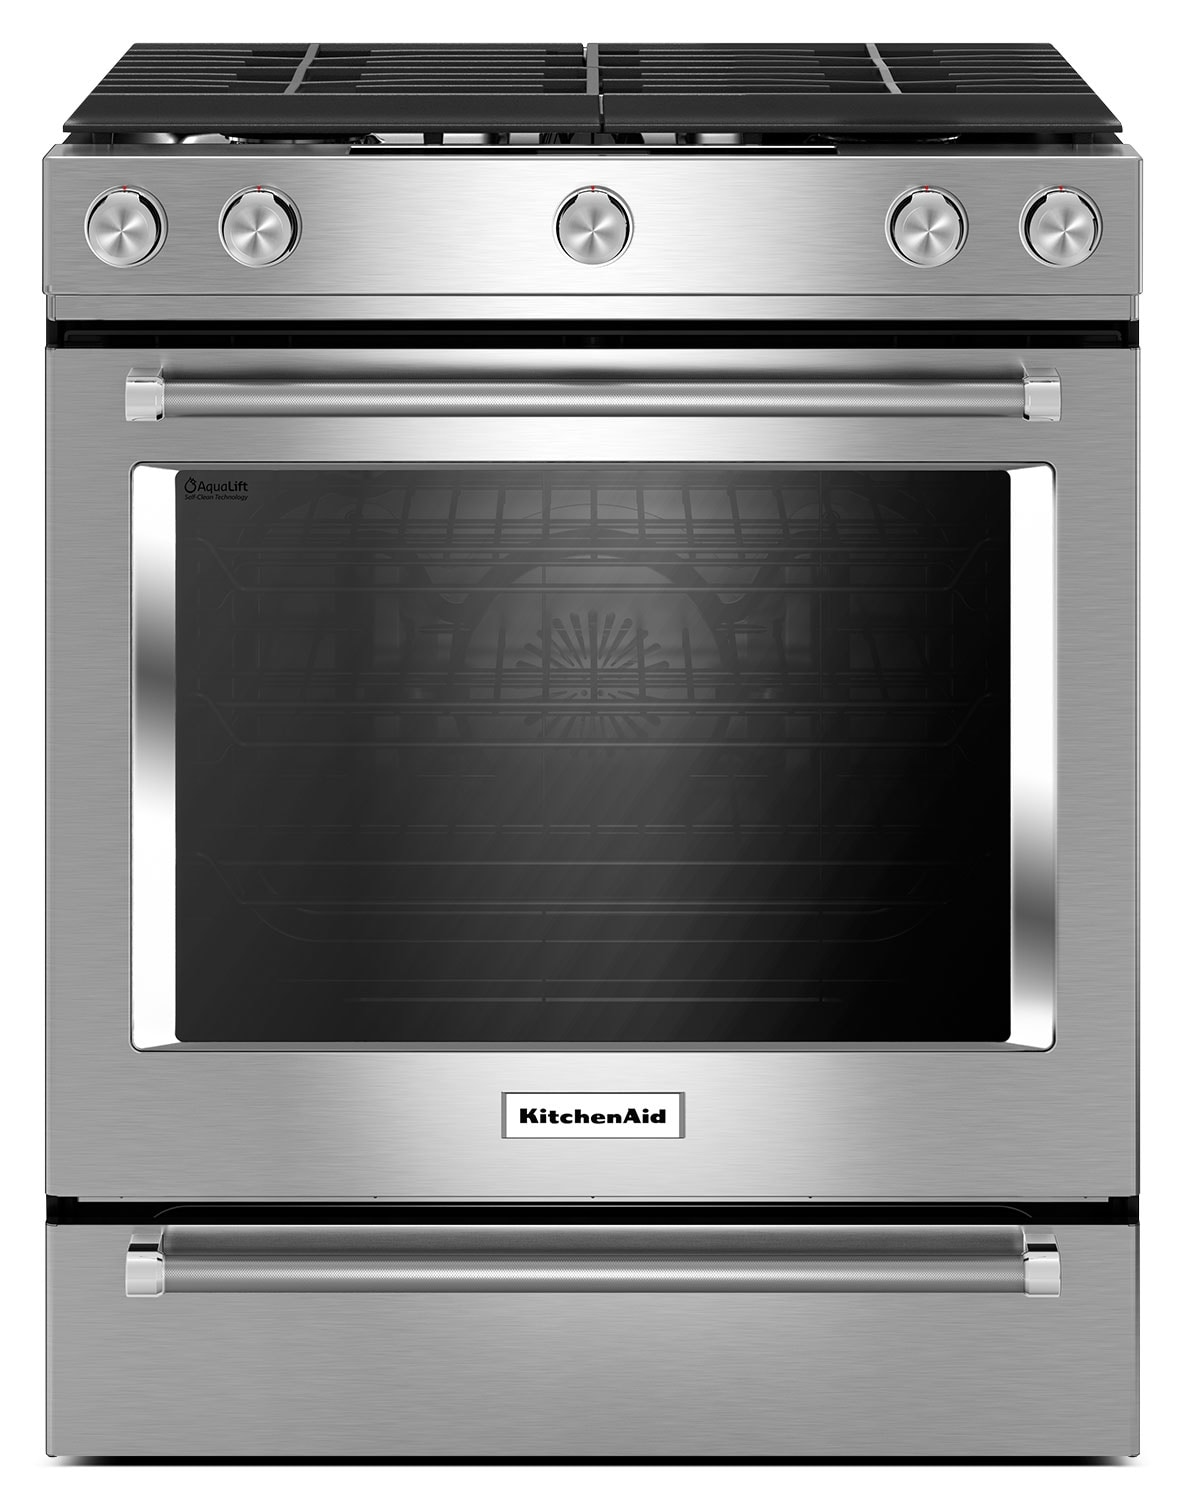 Cooking Products - KitchenAid 5.8 Cu. Ft. Slide-In Convection Gas Range – Stainless Steel